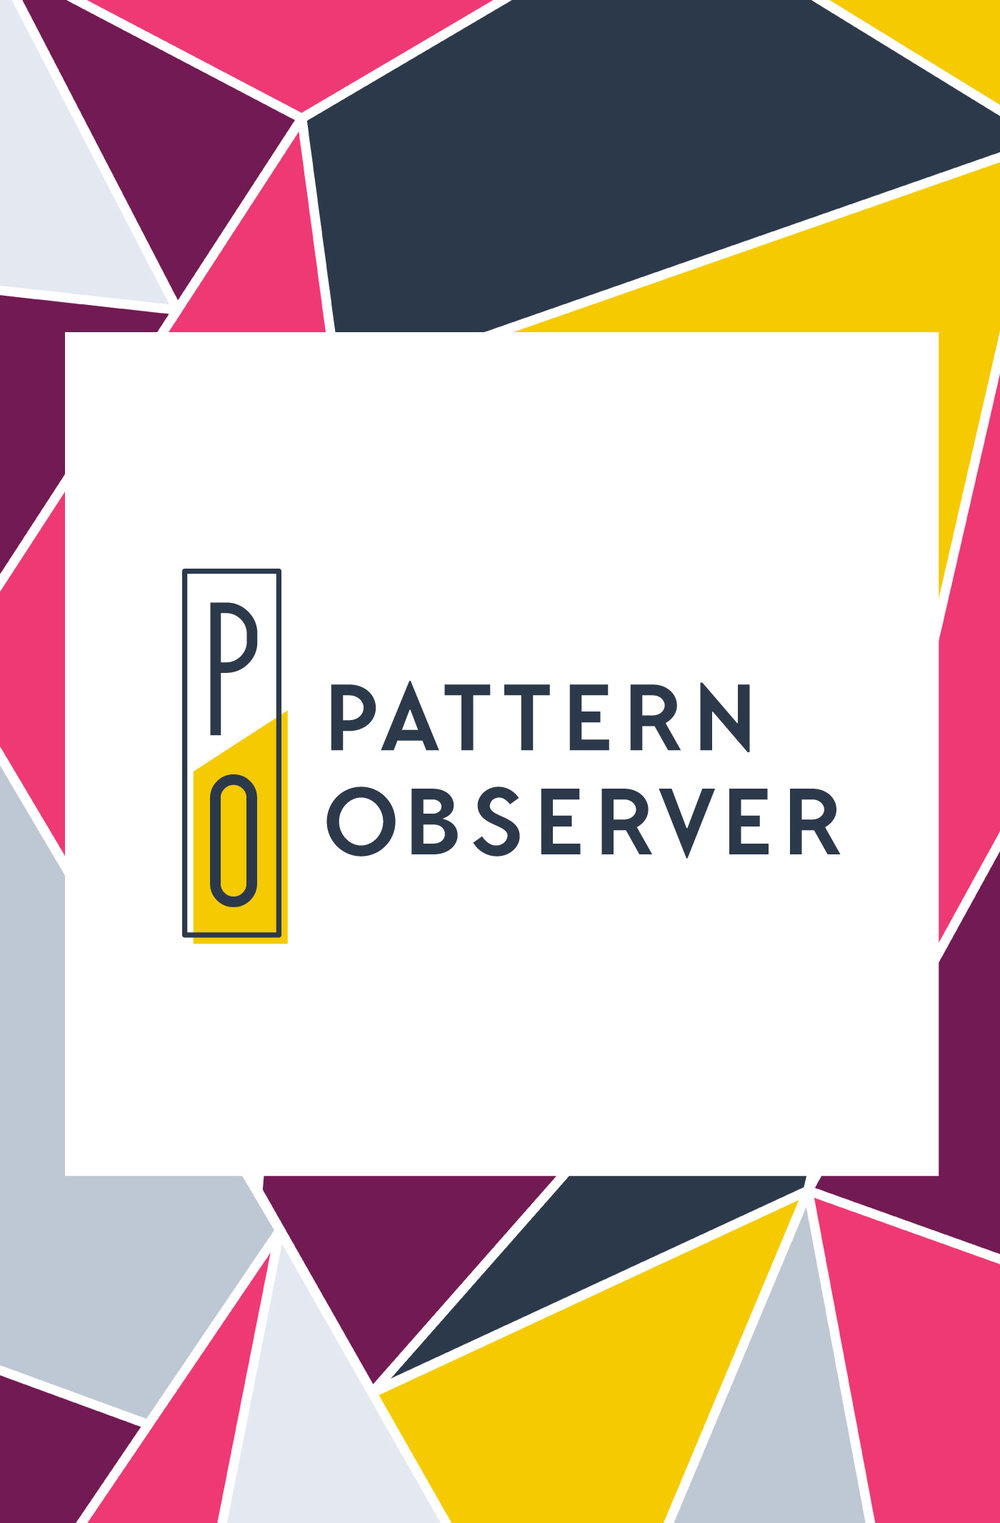 Pattern Observer Logo and Brand Design